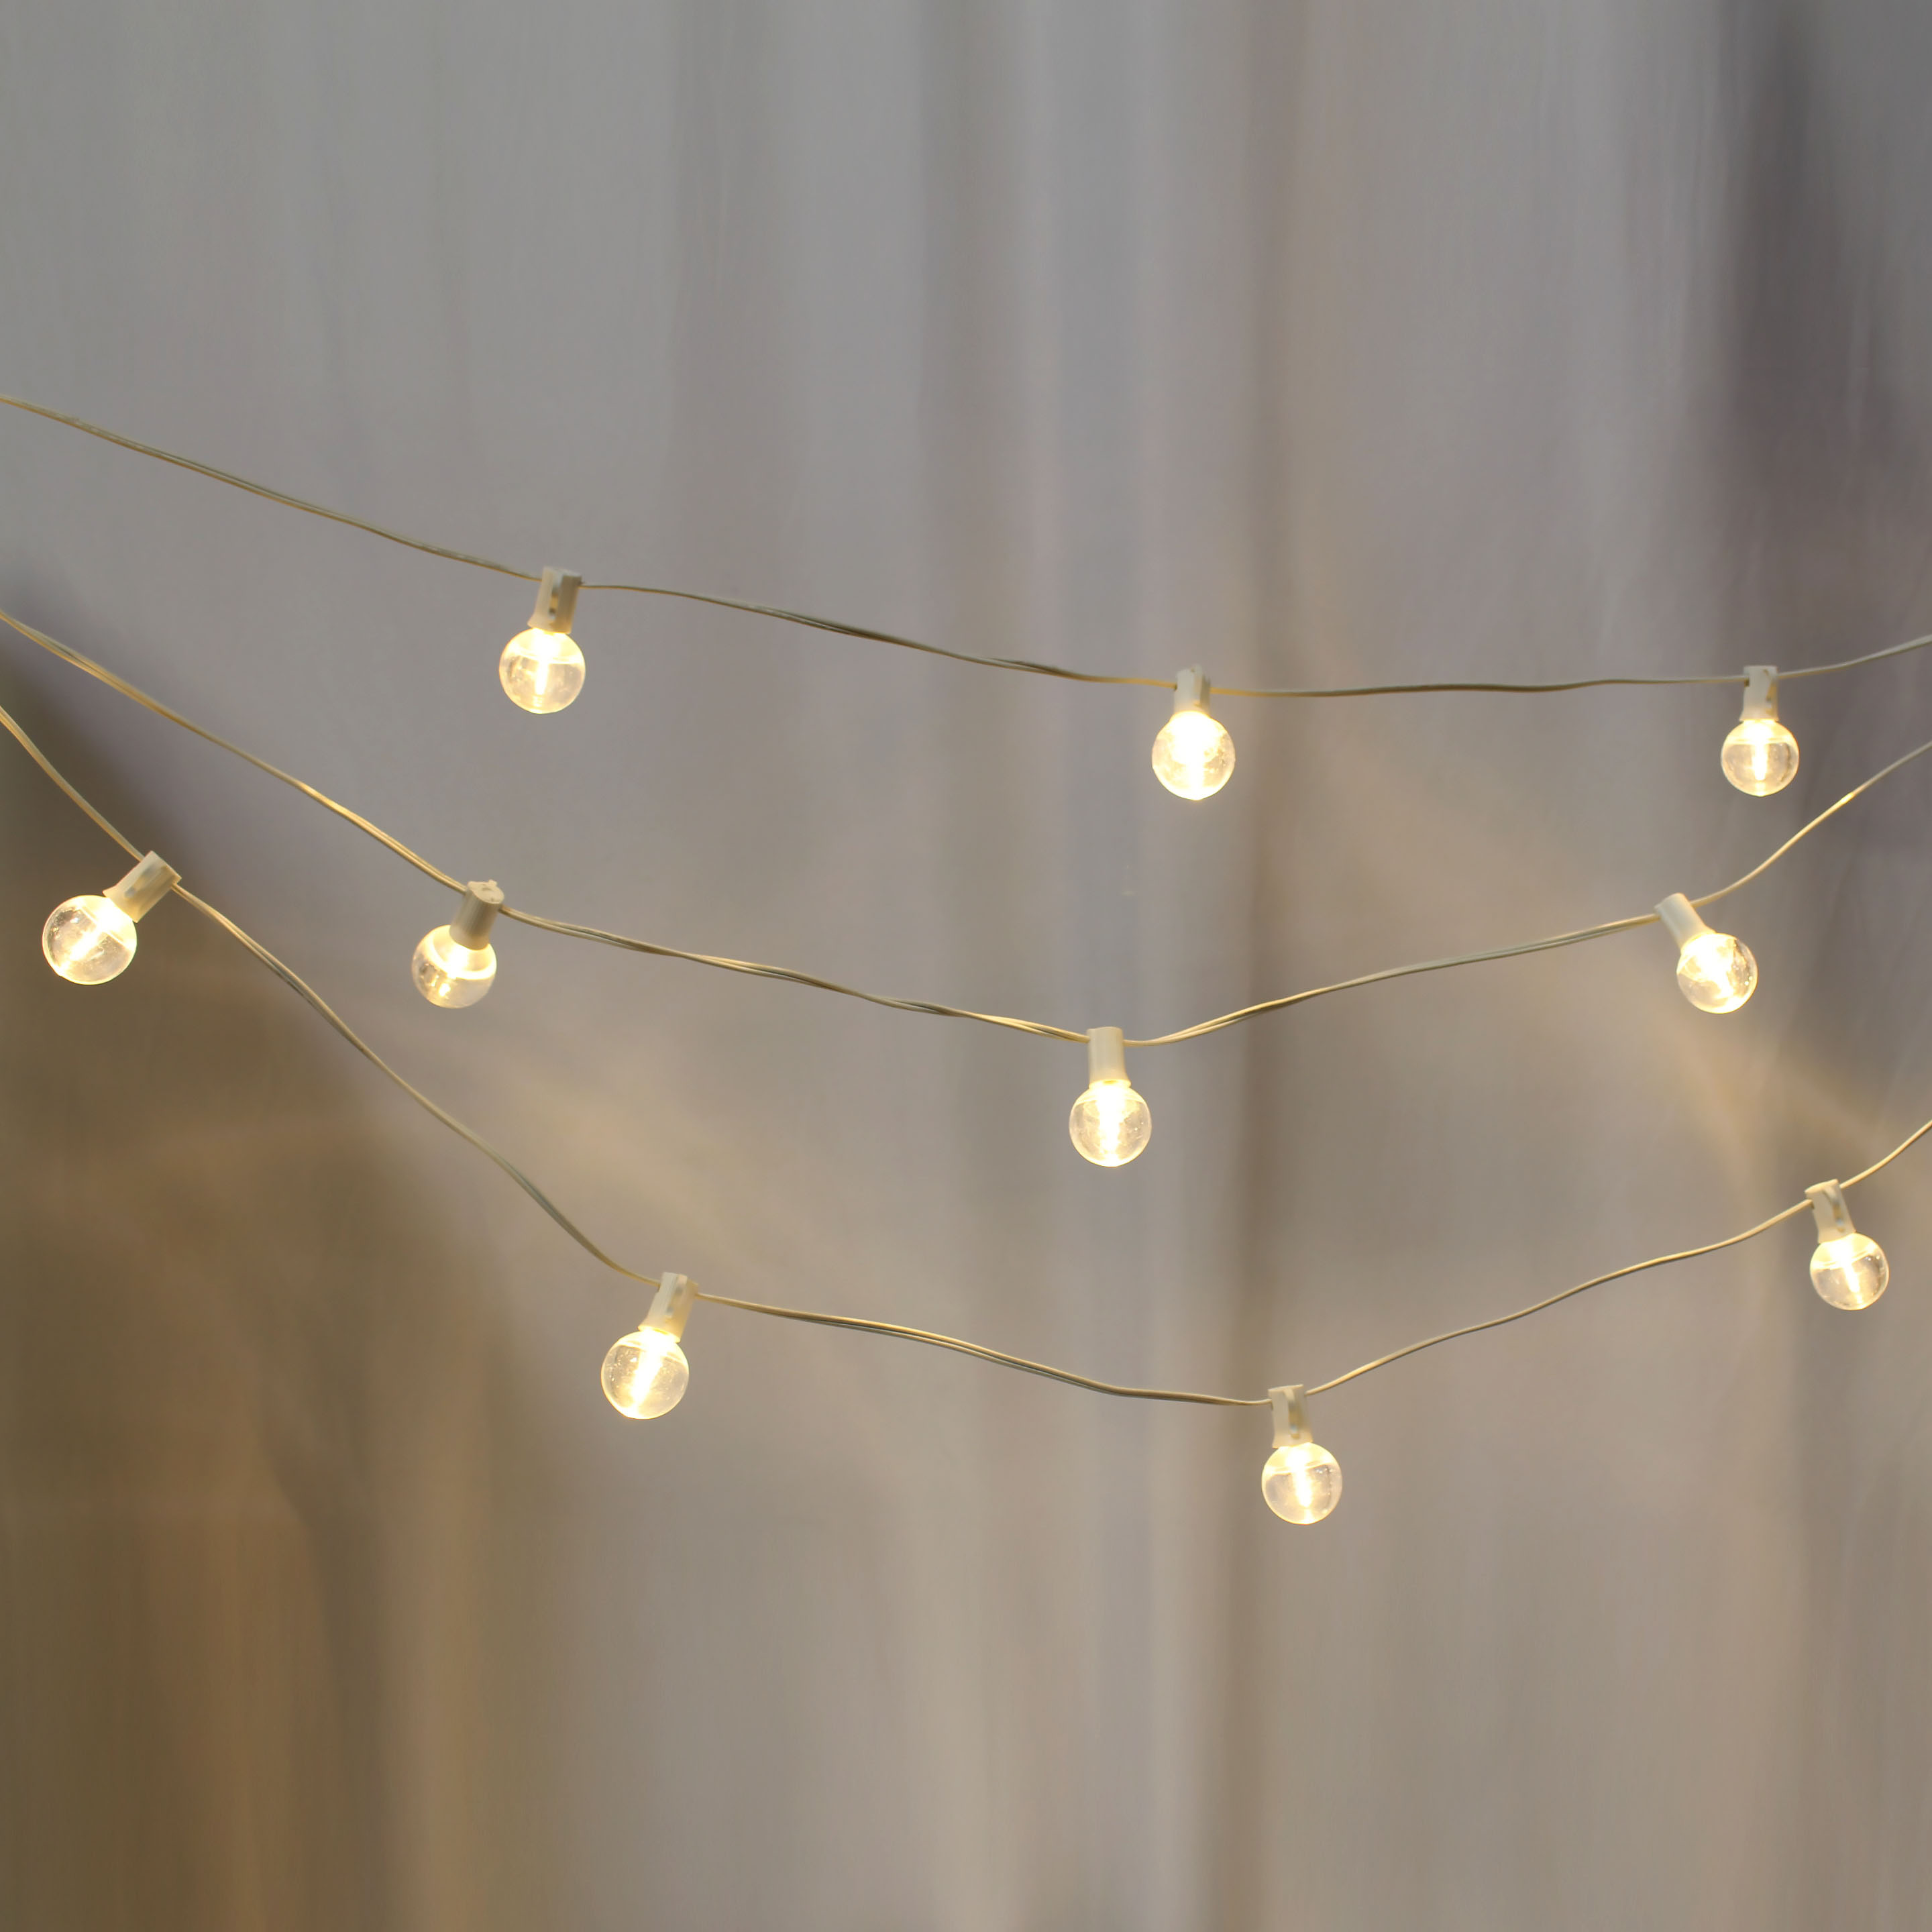 Cafe String Lights 100' White Strand